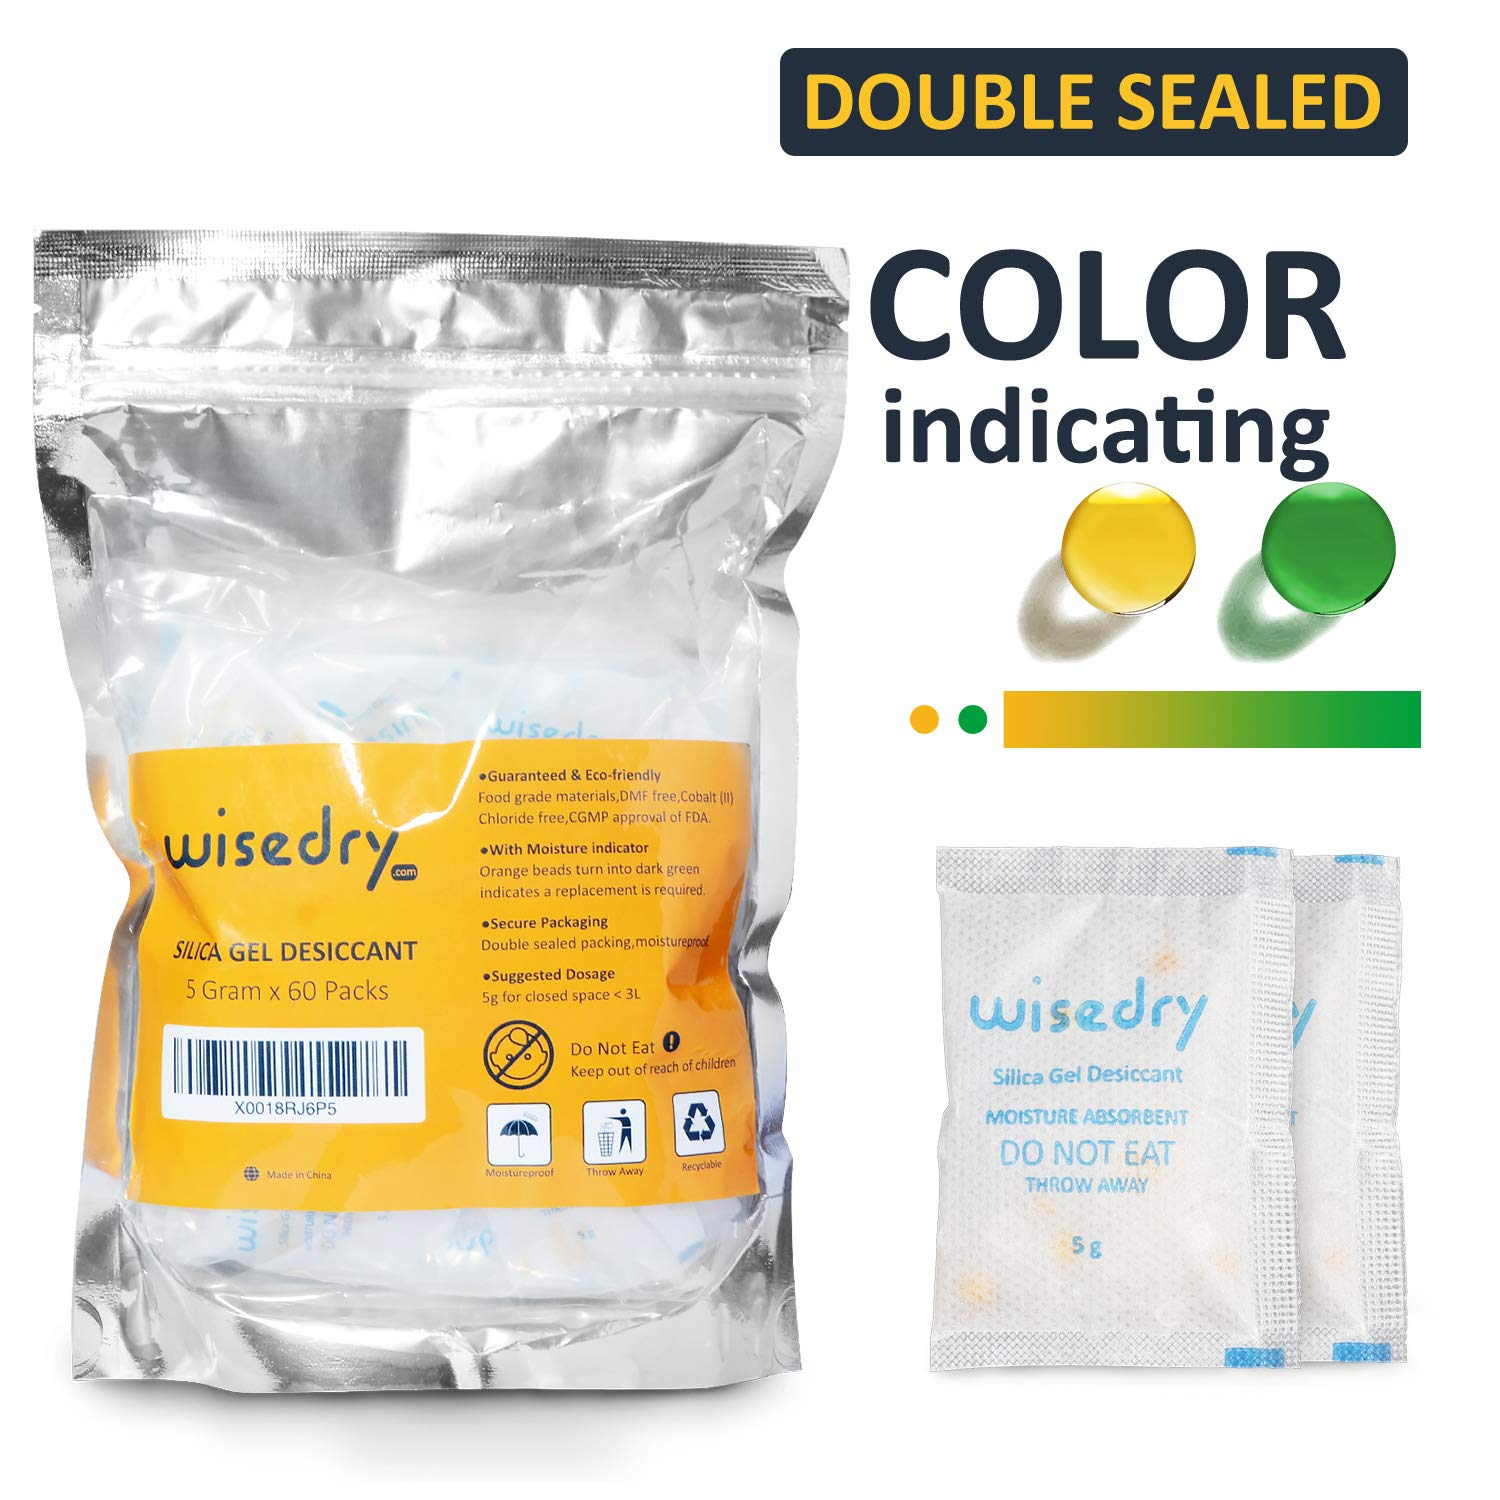 10 Gram x 30 Packs Food Grade Silica Gel Desiccant Packets Drying Bags Orange Color Indicating Cobalt (II) Chloride Free Moisture Absorbent Dehumidifier Viola Technology